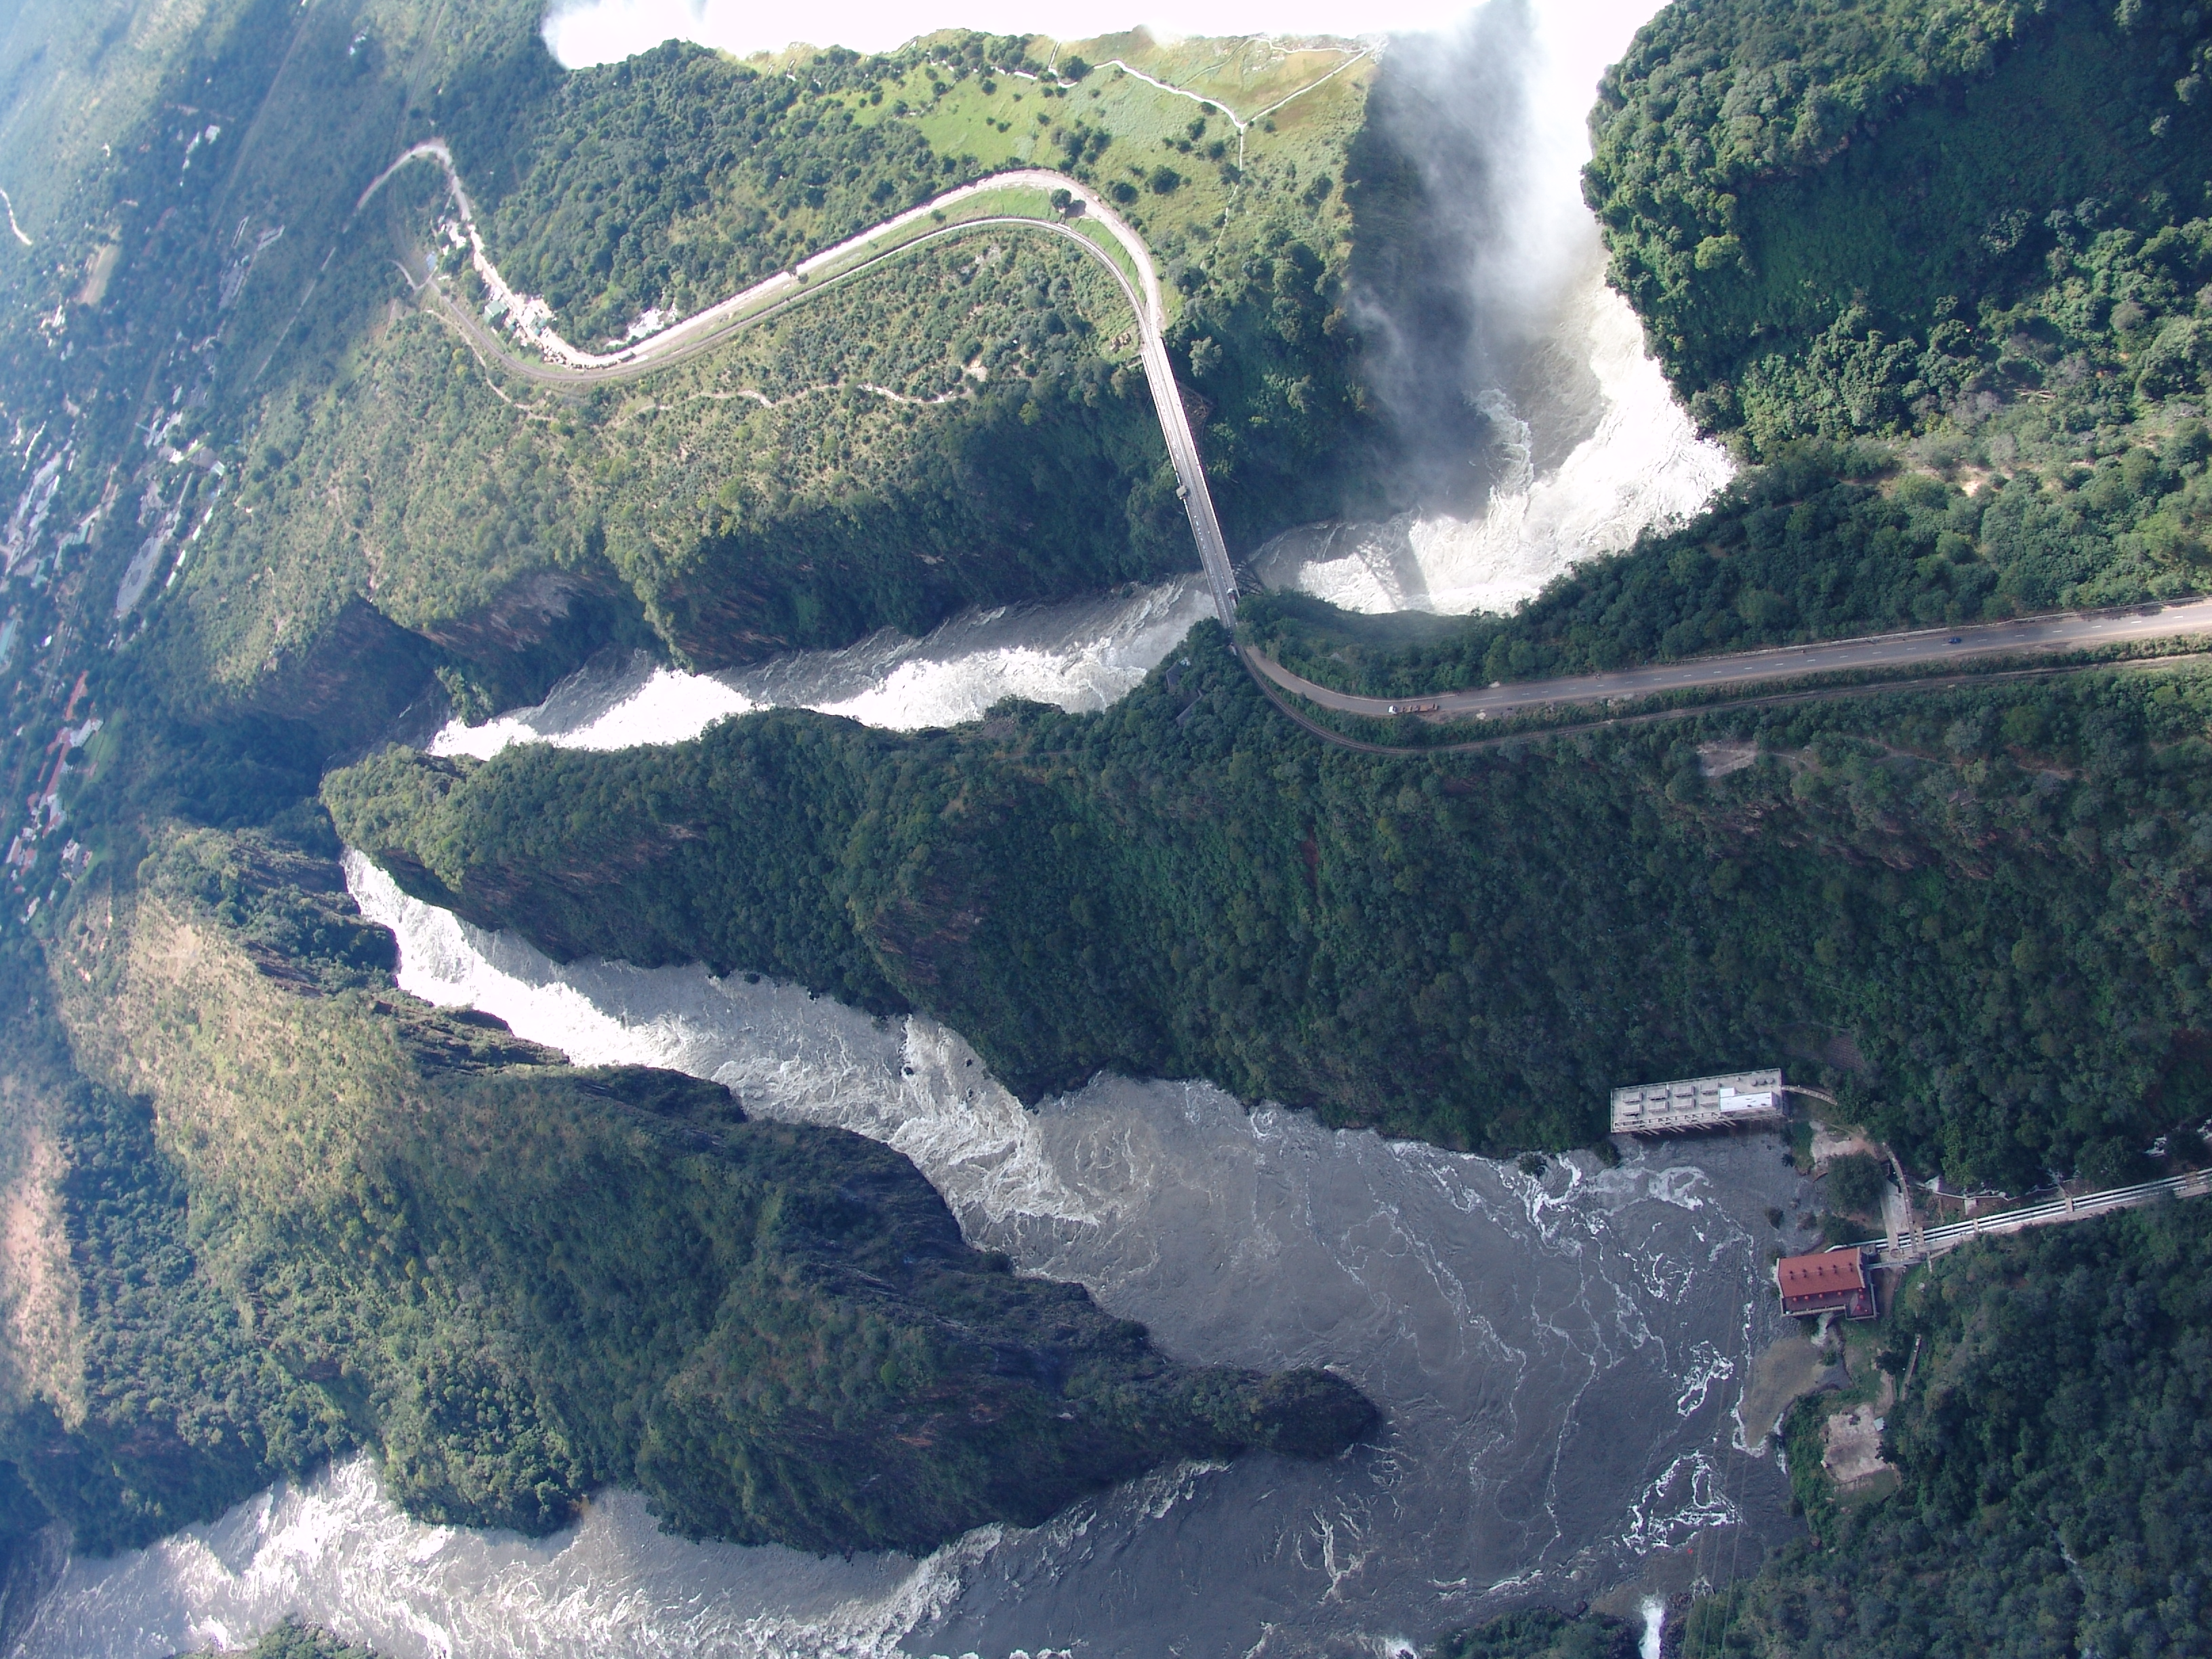 fall from helicopter with Helicopter Victoria Falls on 386324474258369038 moreover Cartoons33 Hubschrauber Frieden moreover 48 Hours Niagara Falls likewise Tipps Helikopterflug In Kapstadt Mit Tafelberg in addition Helicopter Victoria Falls.